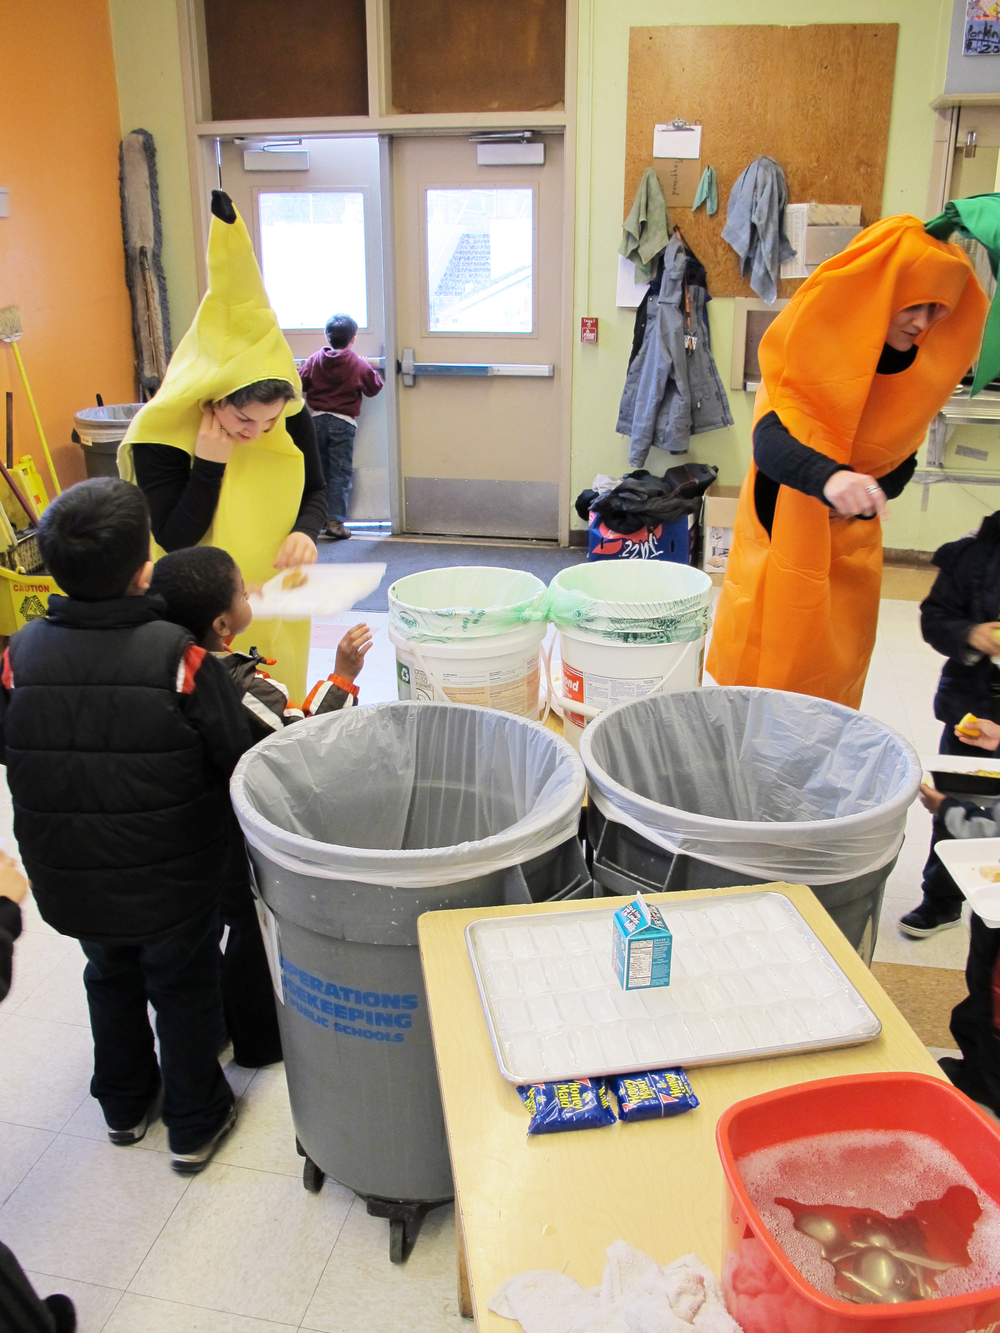 Teaching composting to students at Beech Elementary